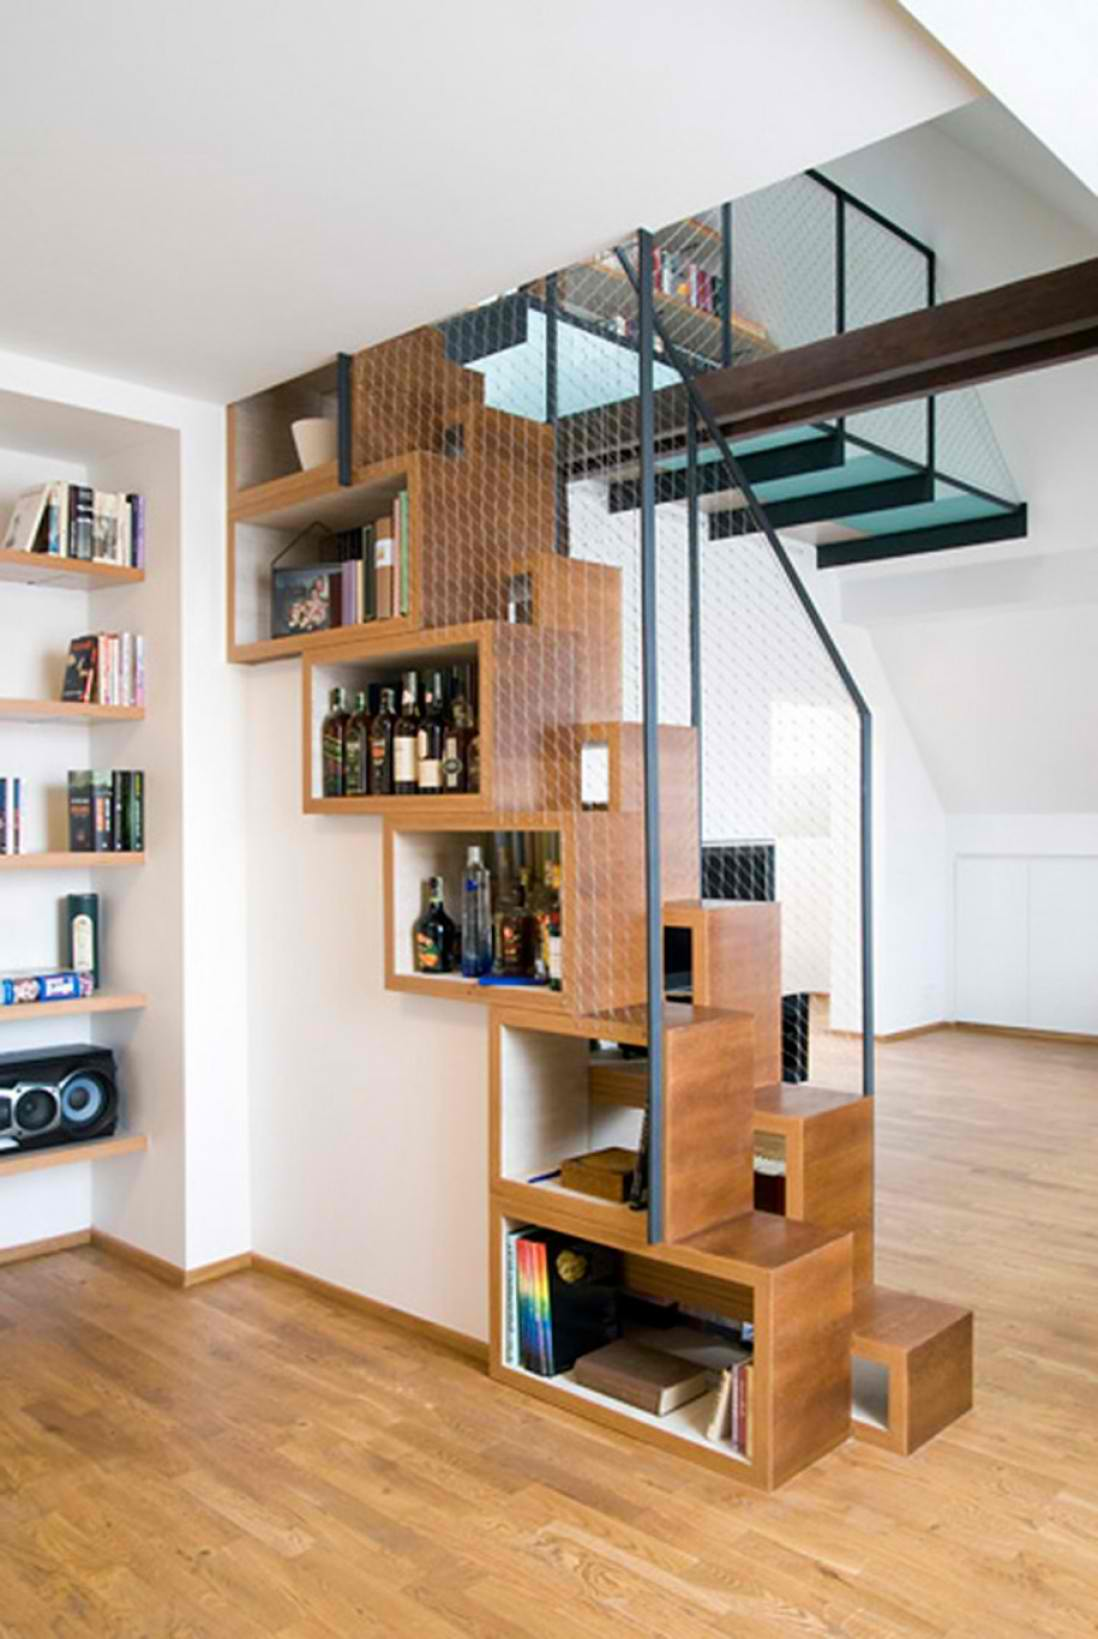 7 Smart Design Solutions For Small Spaces